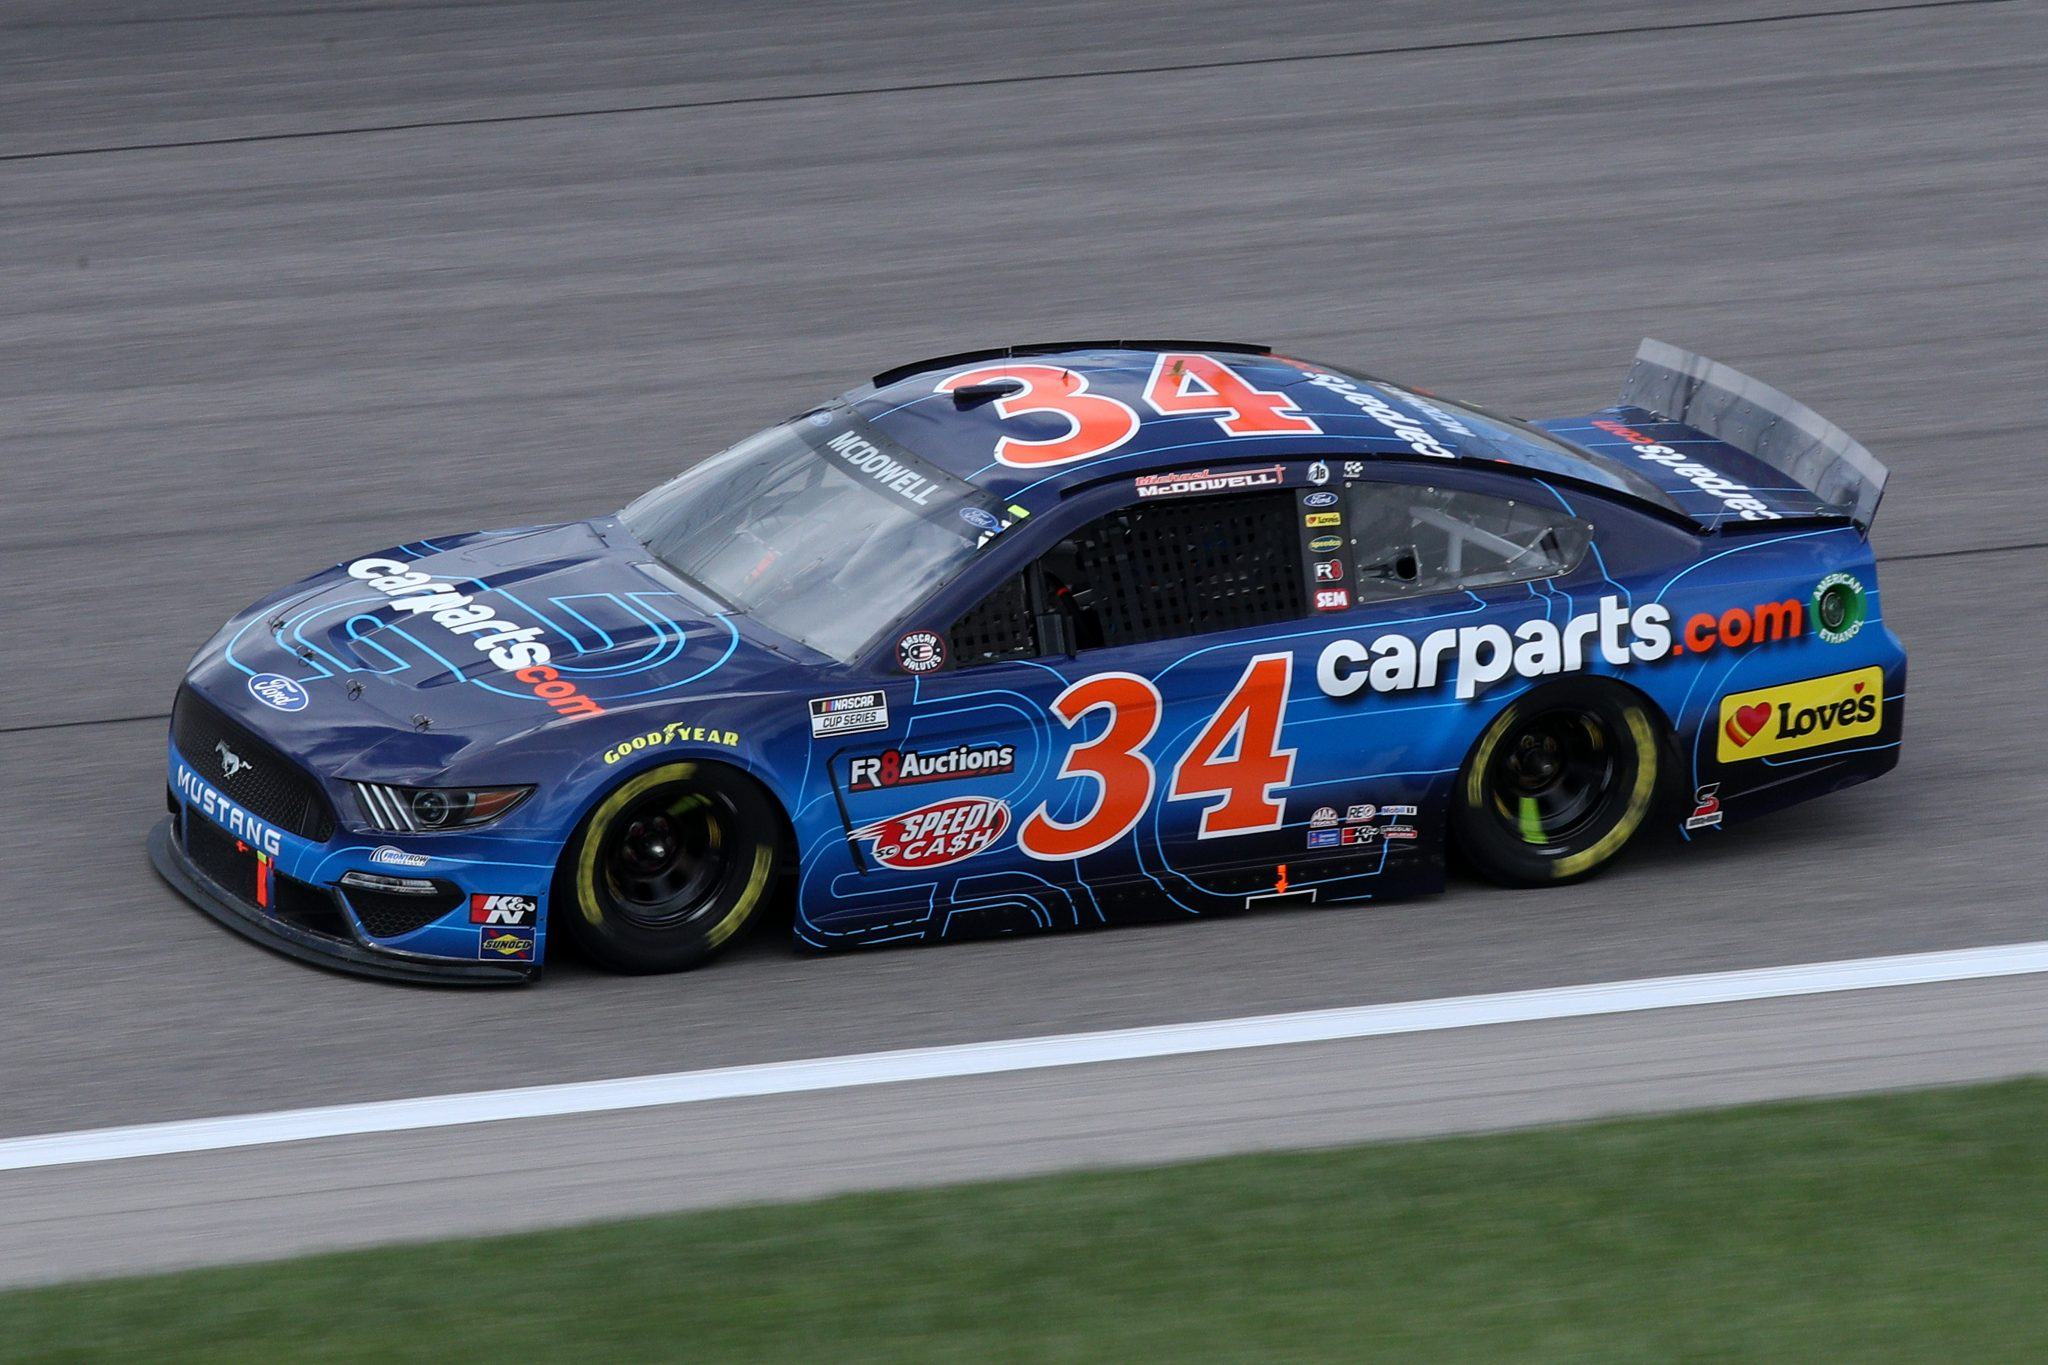 KANSAS CITY, KANSAS - MAY 02: Michael McDowell, driver of the #34 CarParts.com Ford, drives during the NASCAR Cup Series Buschy McBusch Race 400 at Kansas Speedway on May 02, 2021 in Kansas City, Kansas. (Photo by Sean Gardner/Getty Images) | Getty Images